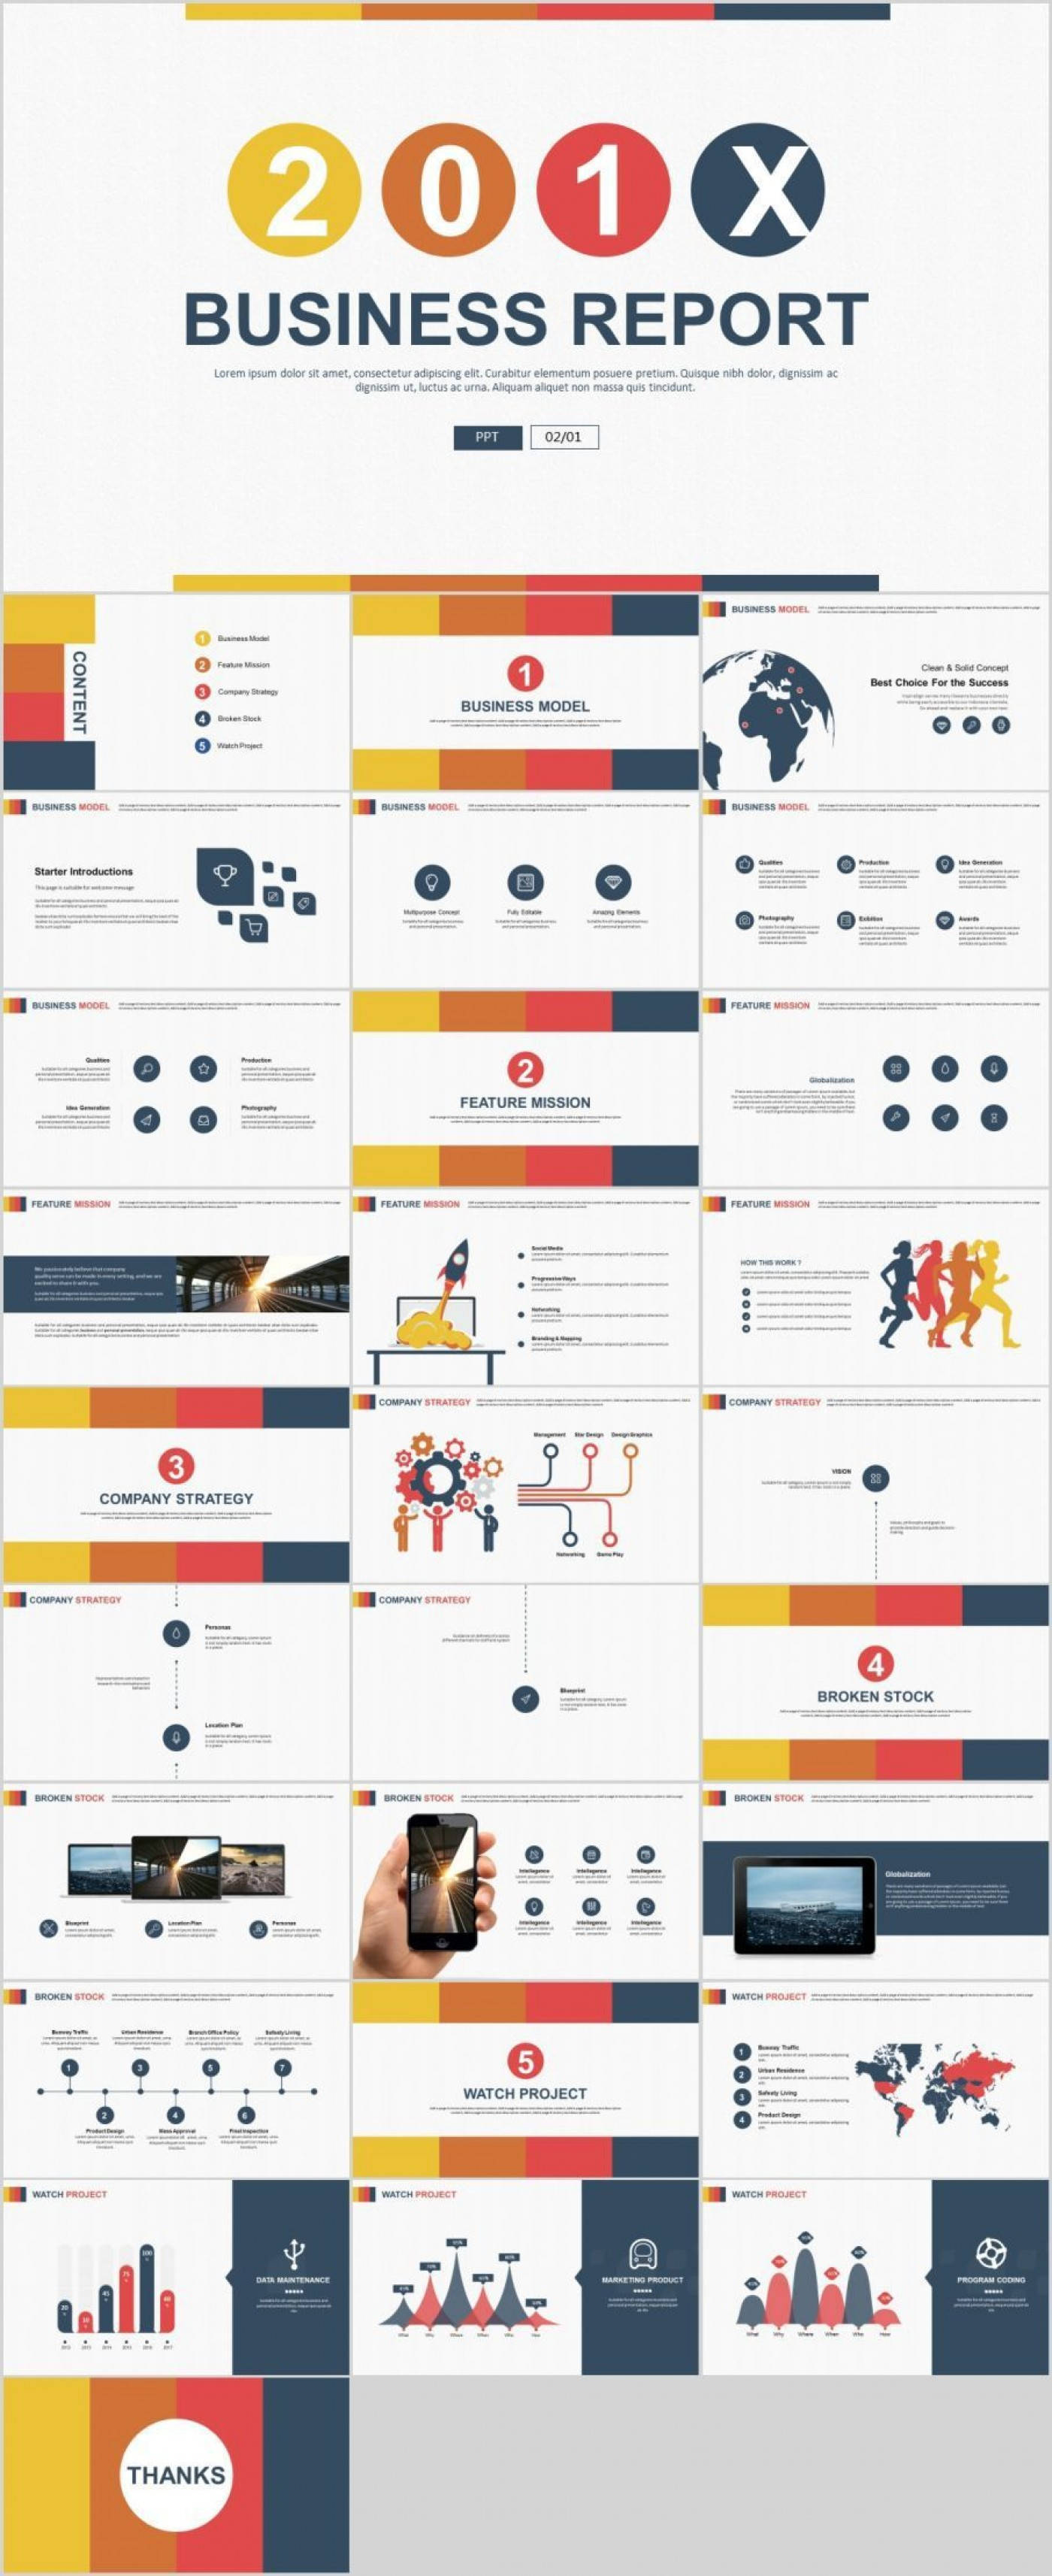 003 Remarkable Timeline Template Presentationgo Idea 1400